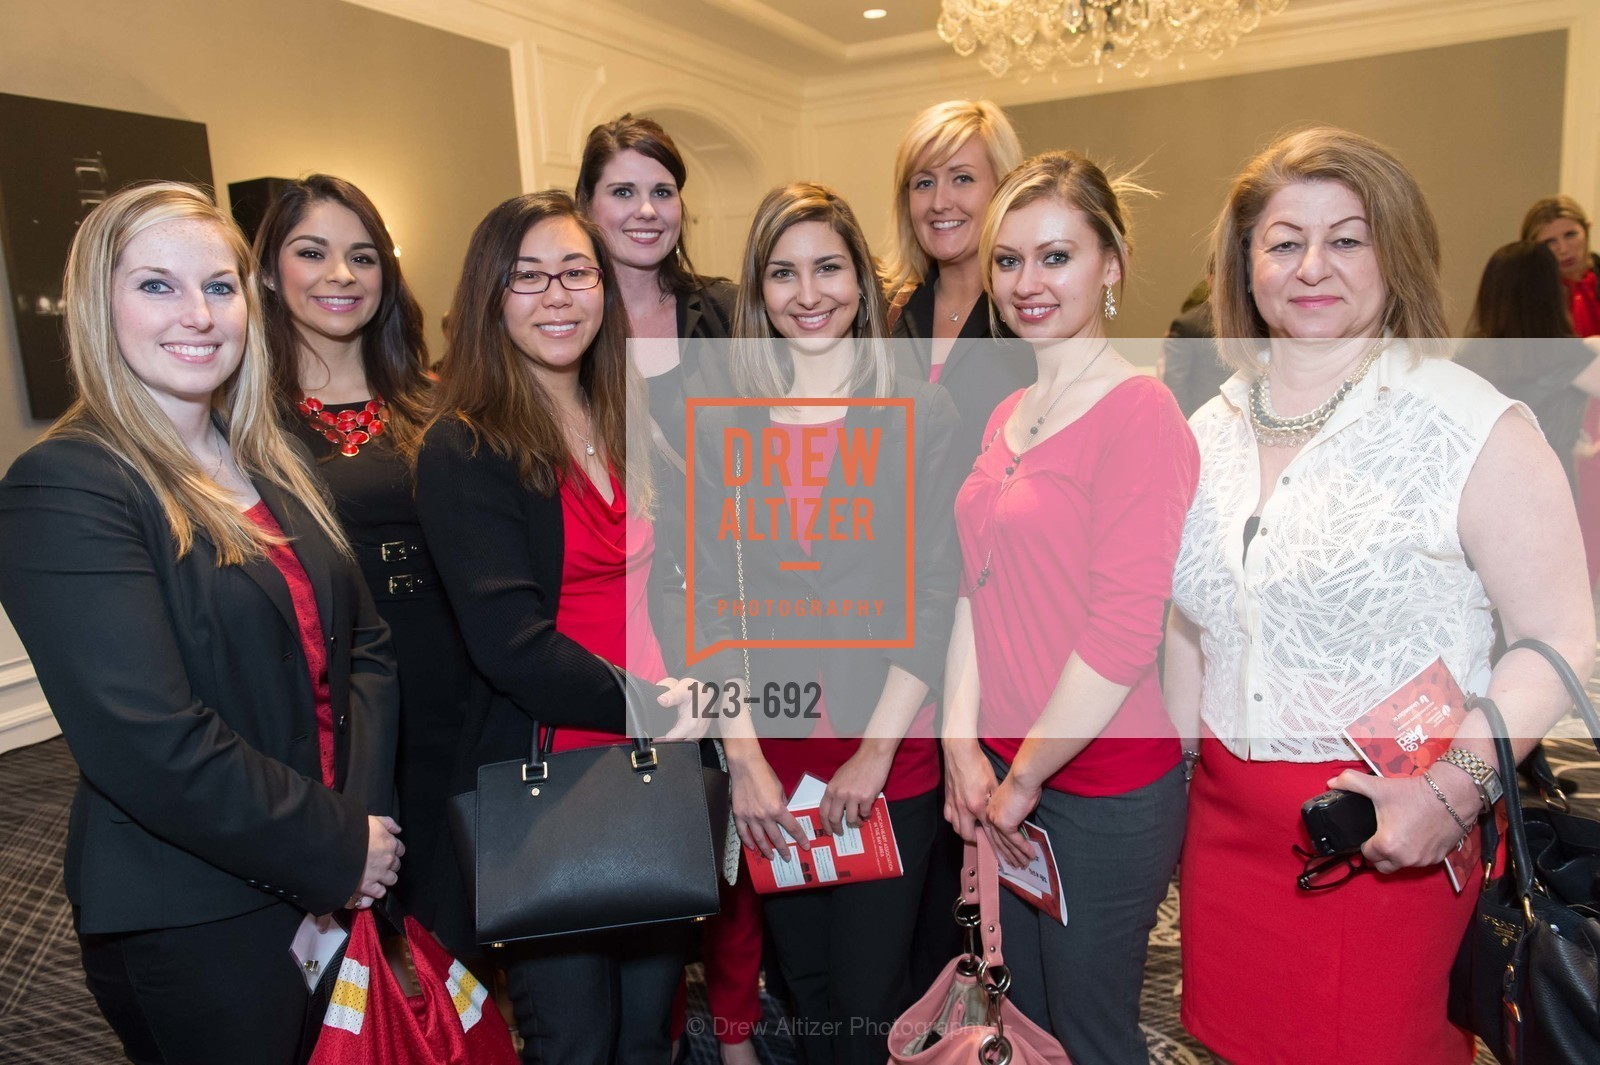 Jennifer Fletcher, Jessica Mendoza, Jessica Kuo, Marissa Anderson, Chloe Vaille, Andrea Wong, Kristin Bruner, Phoebe Marashi, 2015 GoRed for Women Luncheon, US, May 2nd, 2015,Drew Altizer, Drew Altizer Photography, full-service agency, private events, San Francisco photographer, photographer california